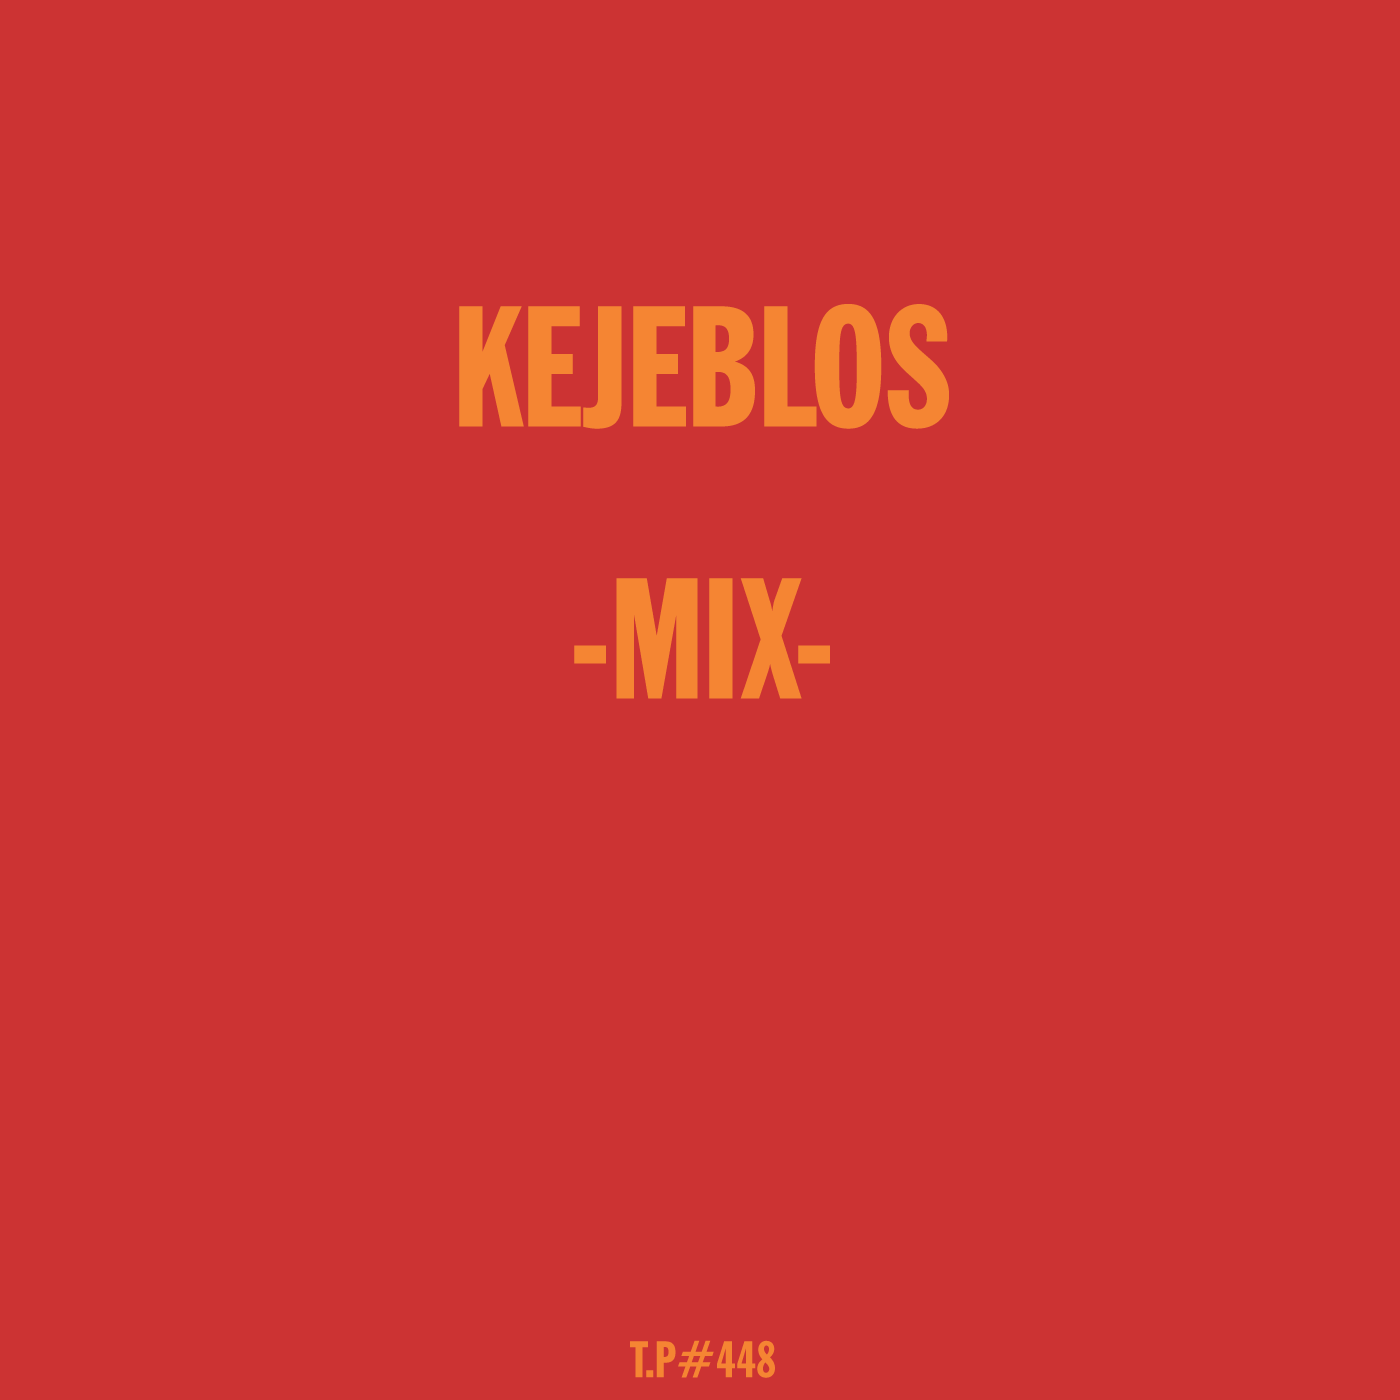 Kejeblos, Mix, Test Pressing, Dub, Disco, House